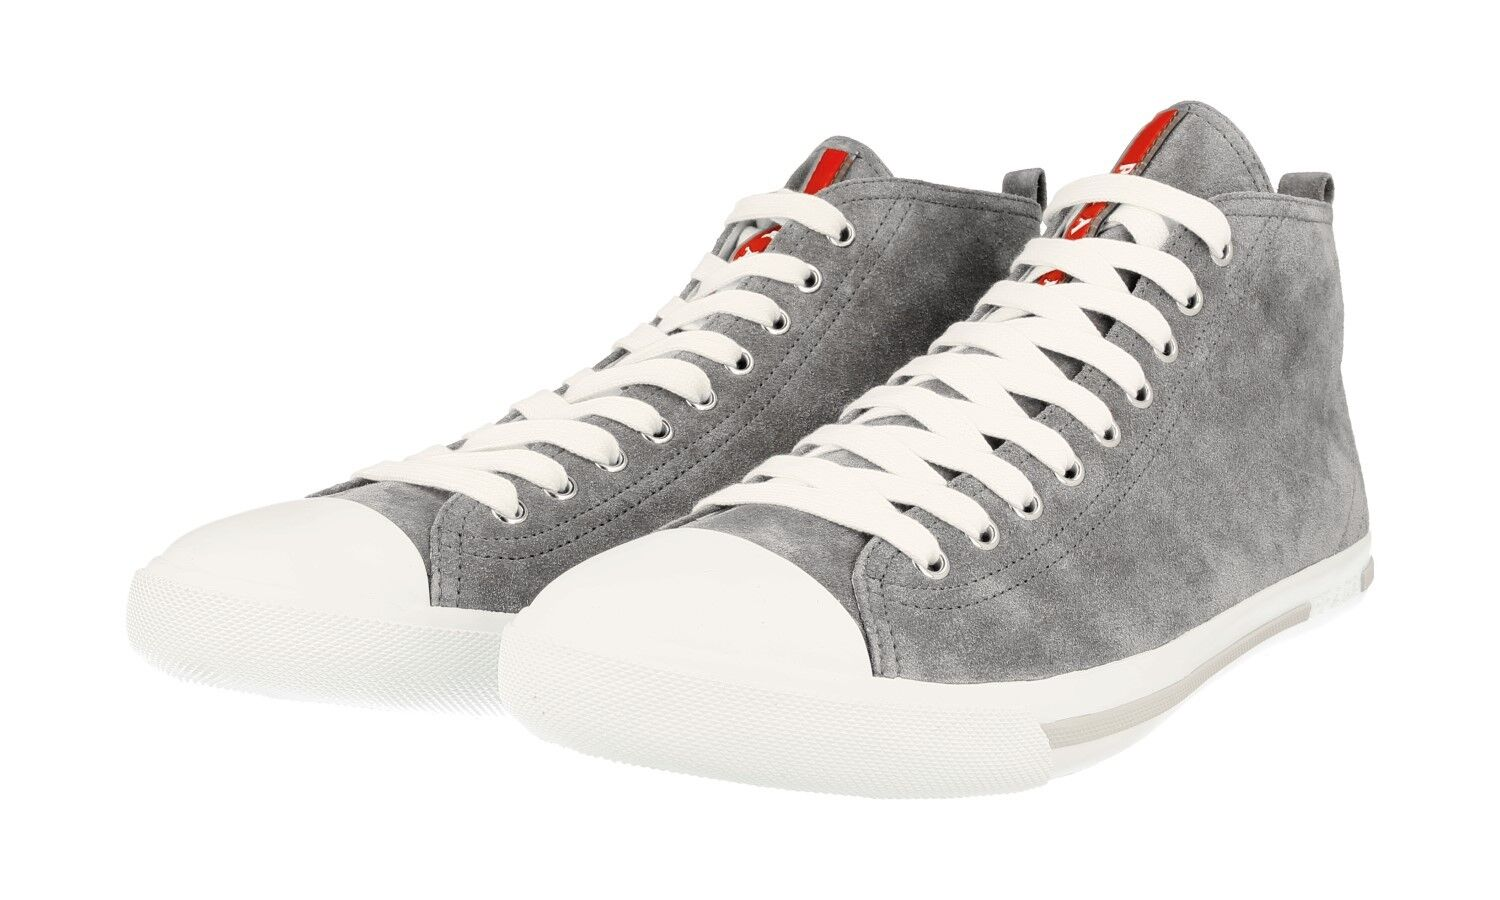 AUTHENTIC LUXURY PRADA SNEAKERS SHOES 4T2583 GREY NEW US 11.5